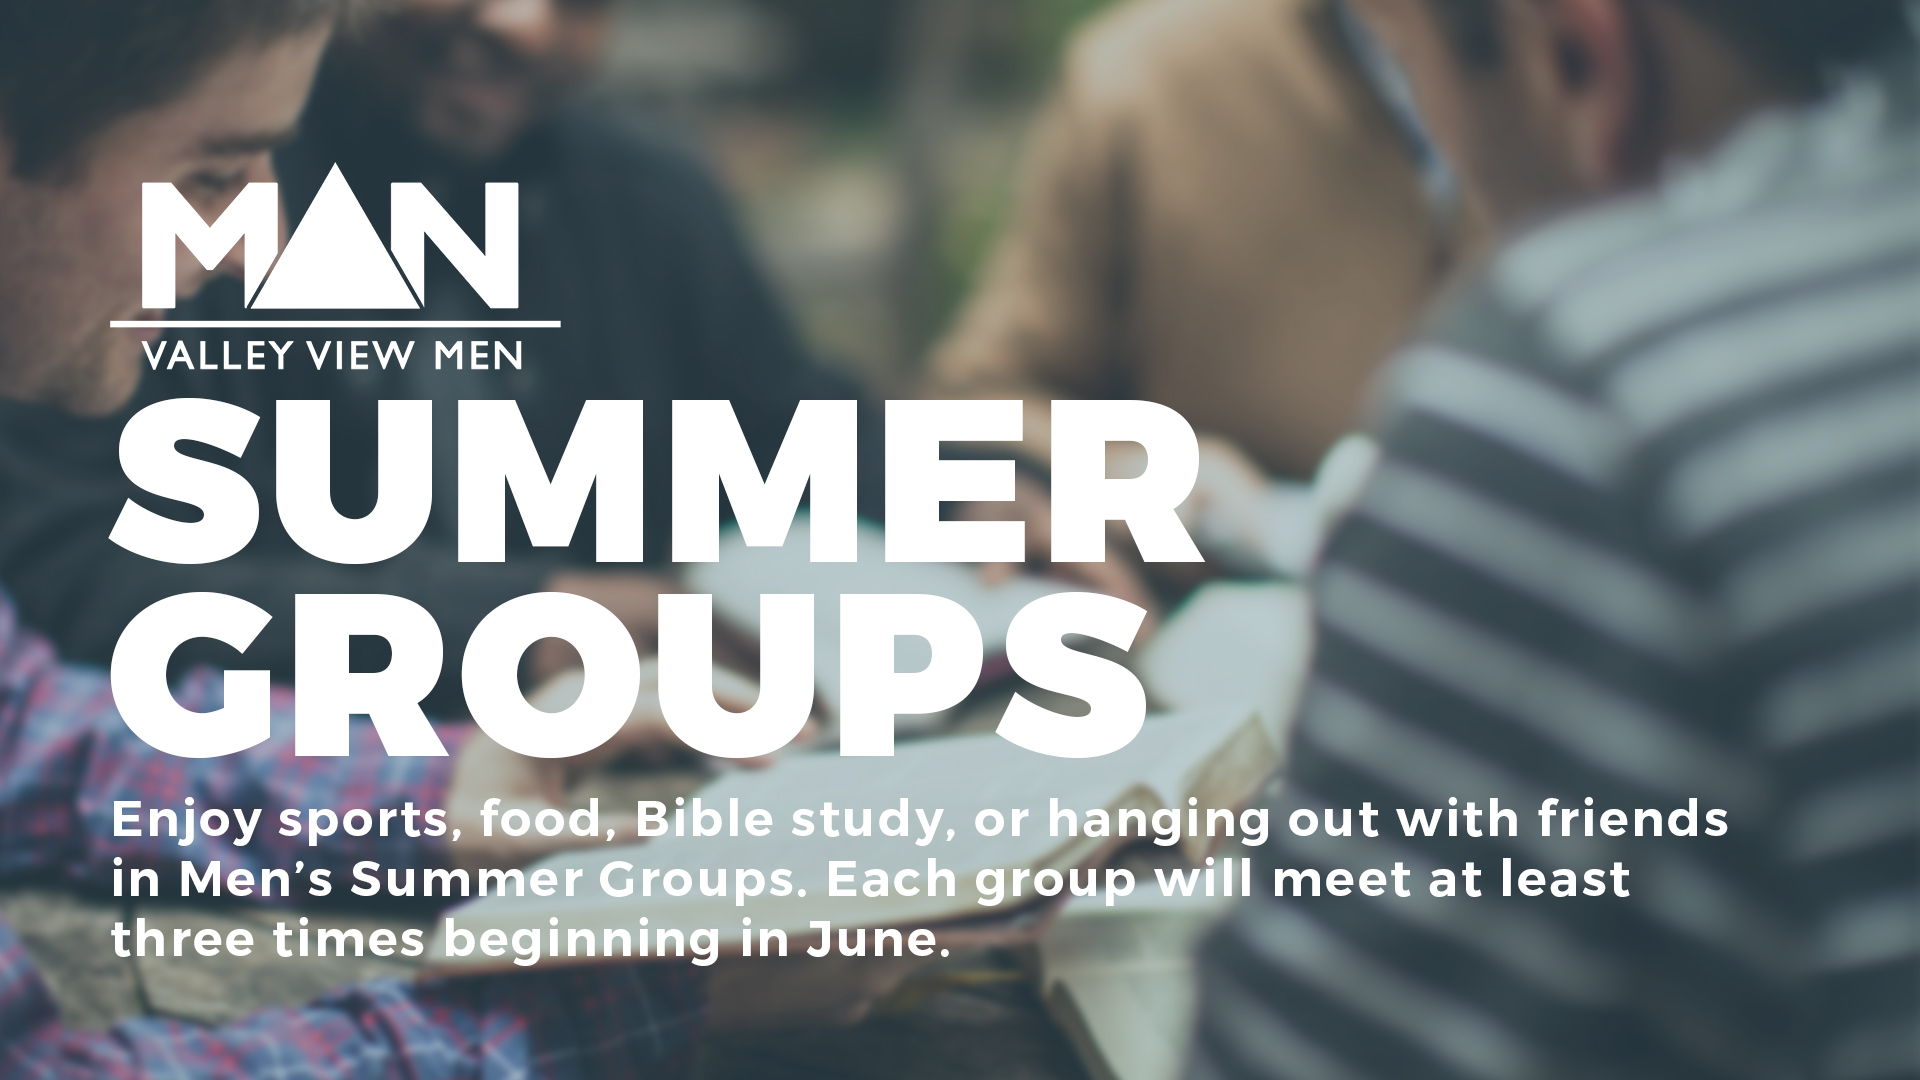 men's summer groups valley view dallas